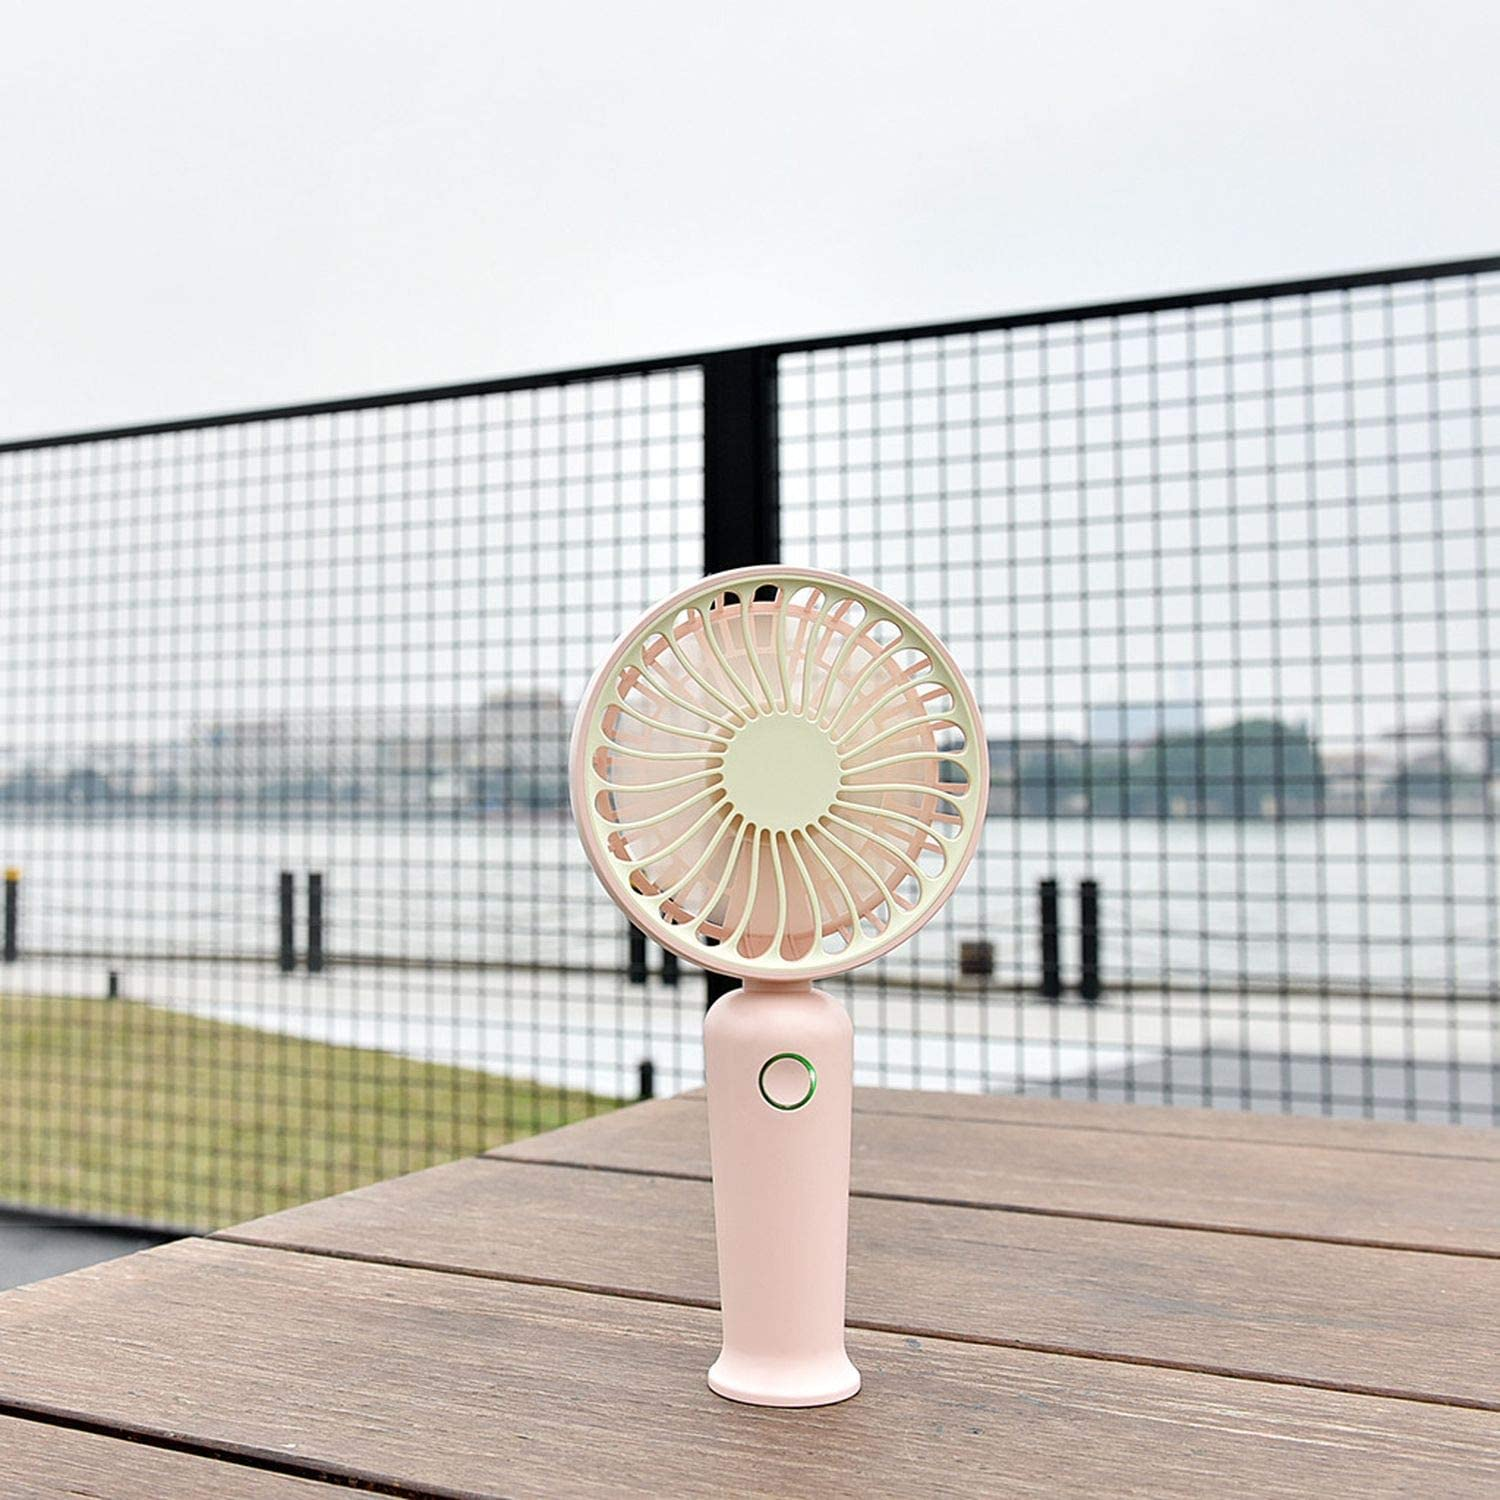 Handheld Fan USB Rechargeable Portable USB Powered Cooling Fan Handheld Mini Fan USB Rechargeable Fan Cool USB Gadgets #,Gray